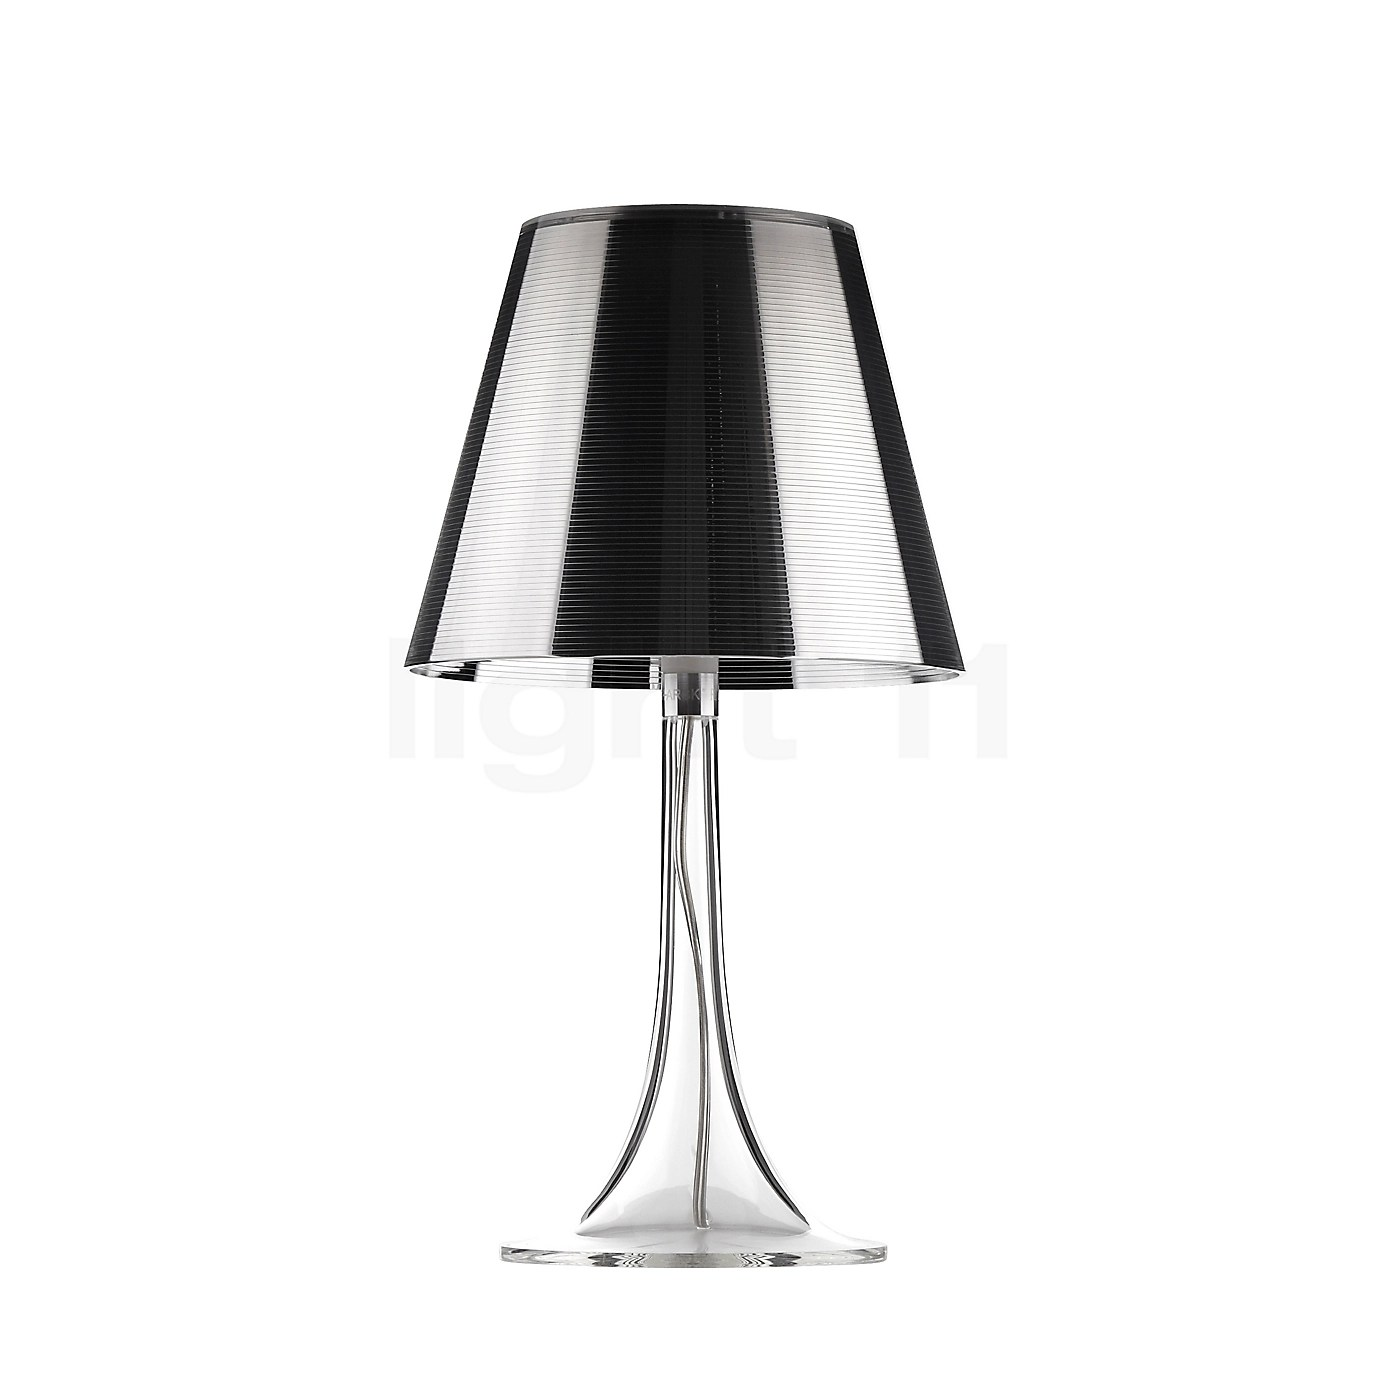 Luminaire Starck Flos Miss K Lampe De Chevet En Vente Sur Light11 Be